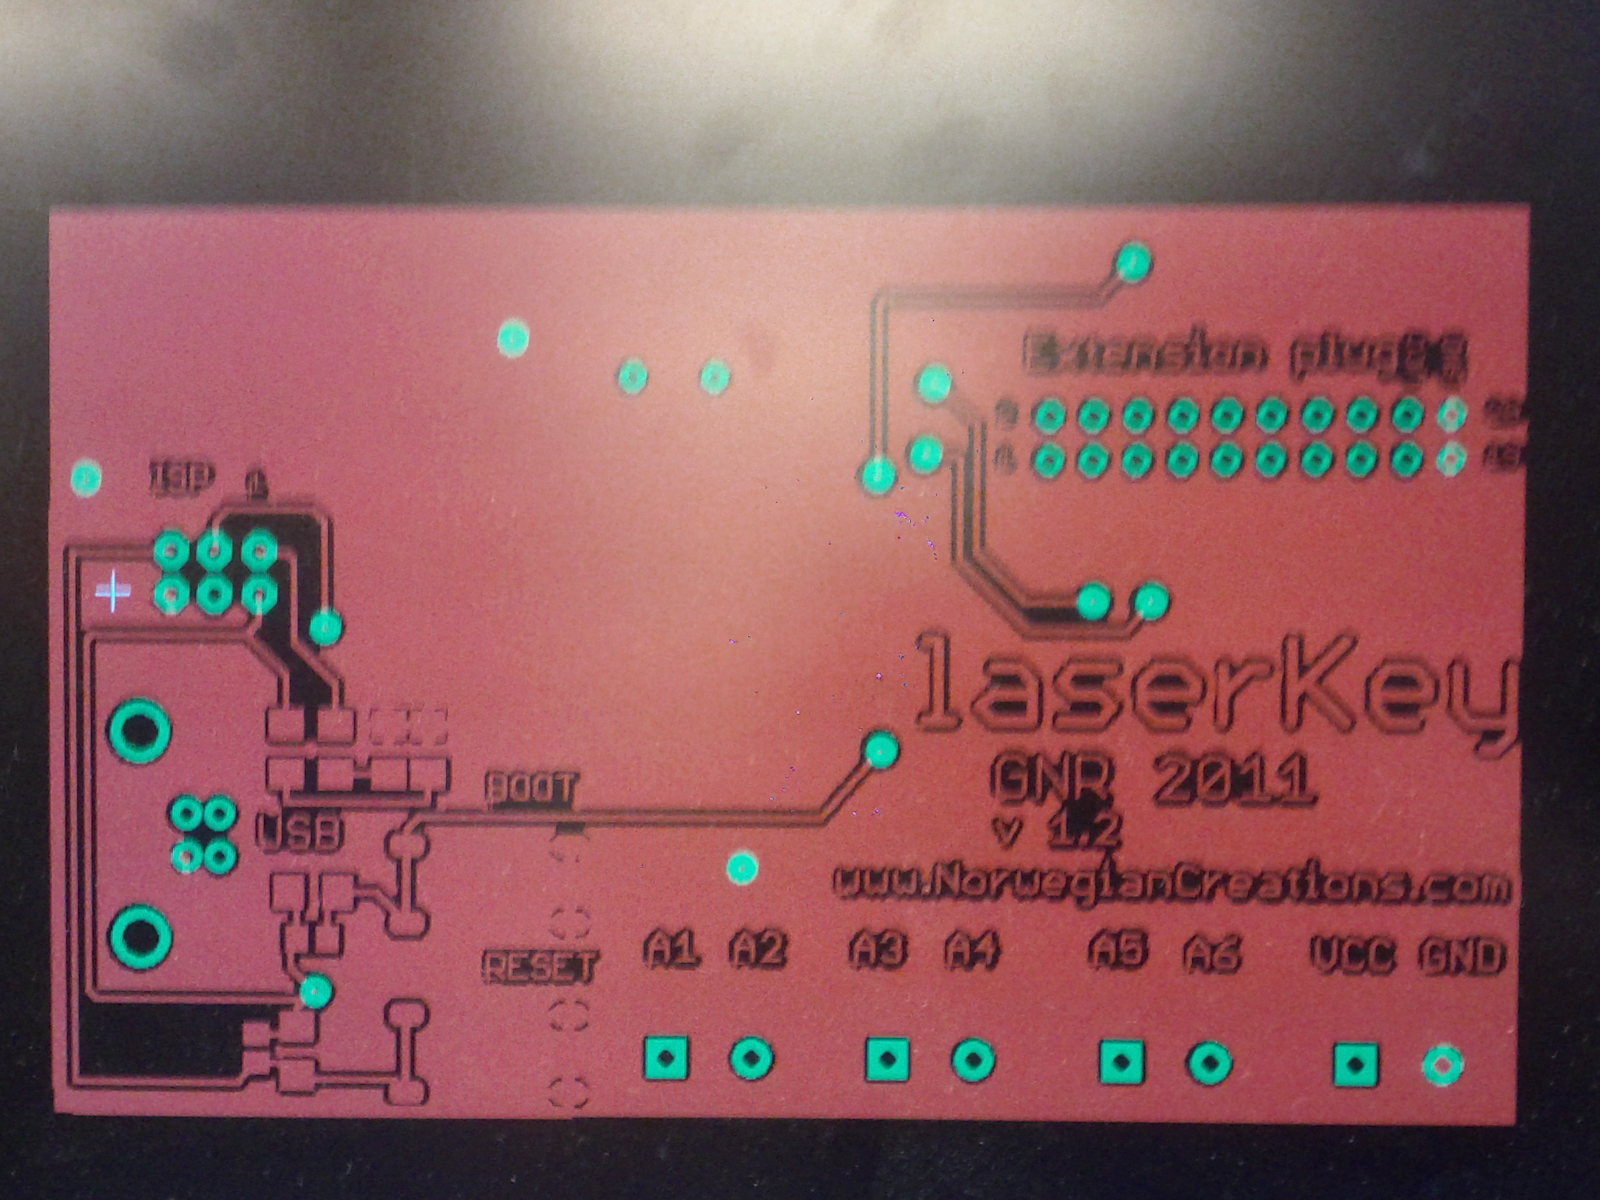 The top layer of the circuit board (Picture taken of the print computer's screen)